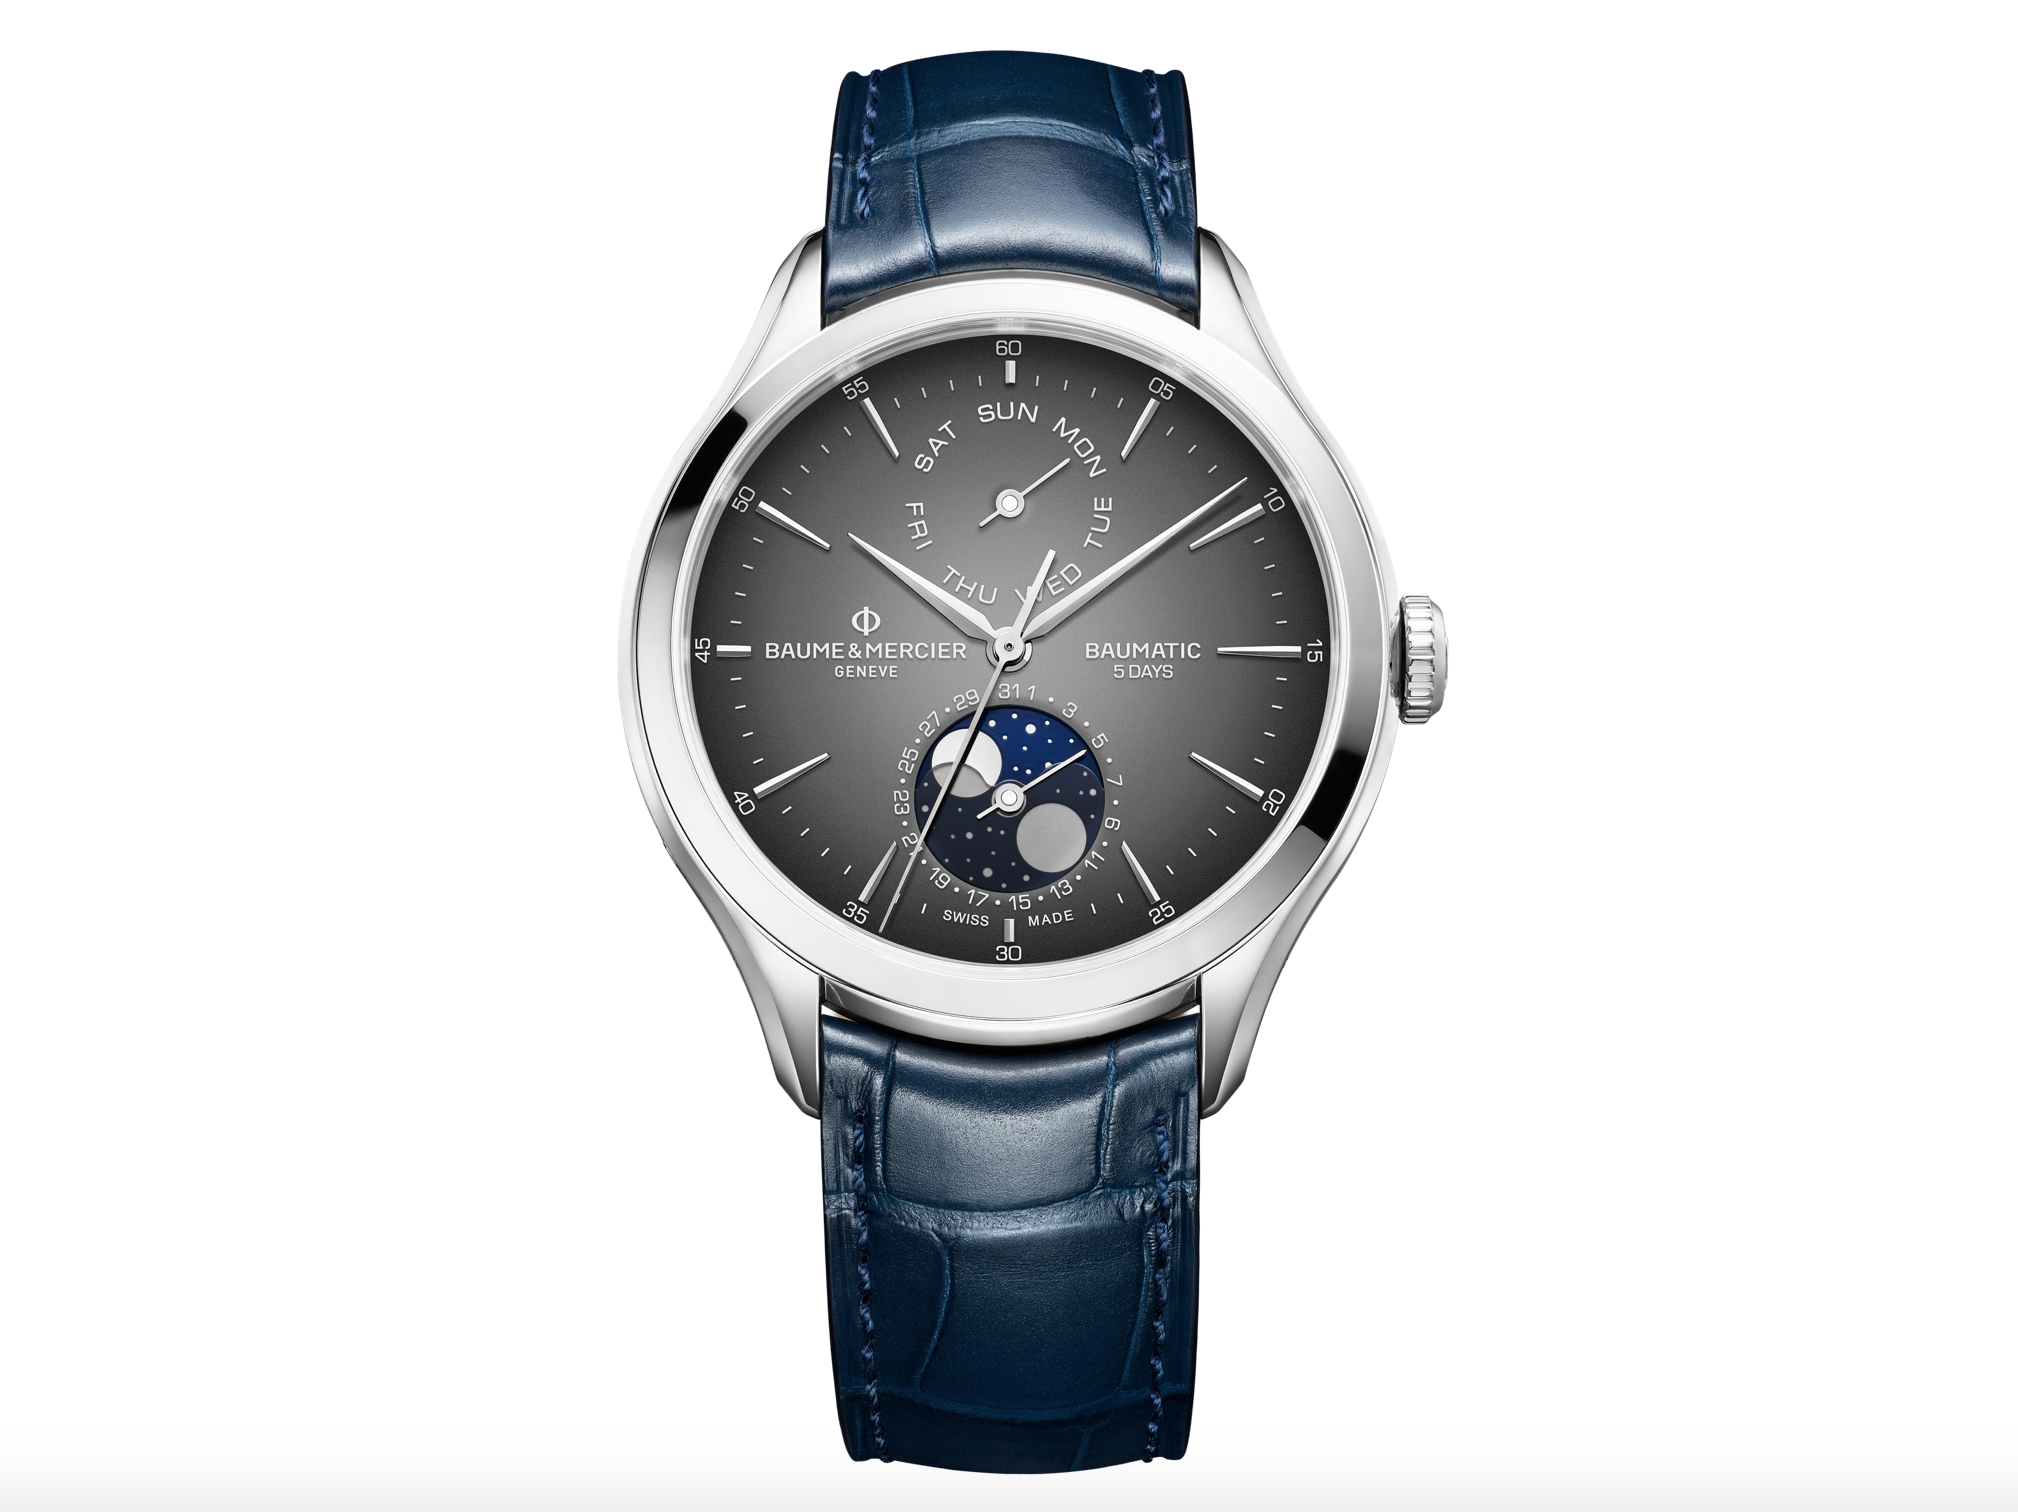 Baume & Mercier Clifton Baumatic Day-Date and Moon-Phase Automatic